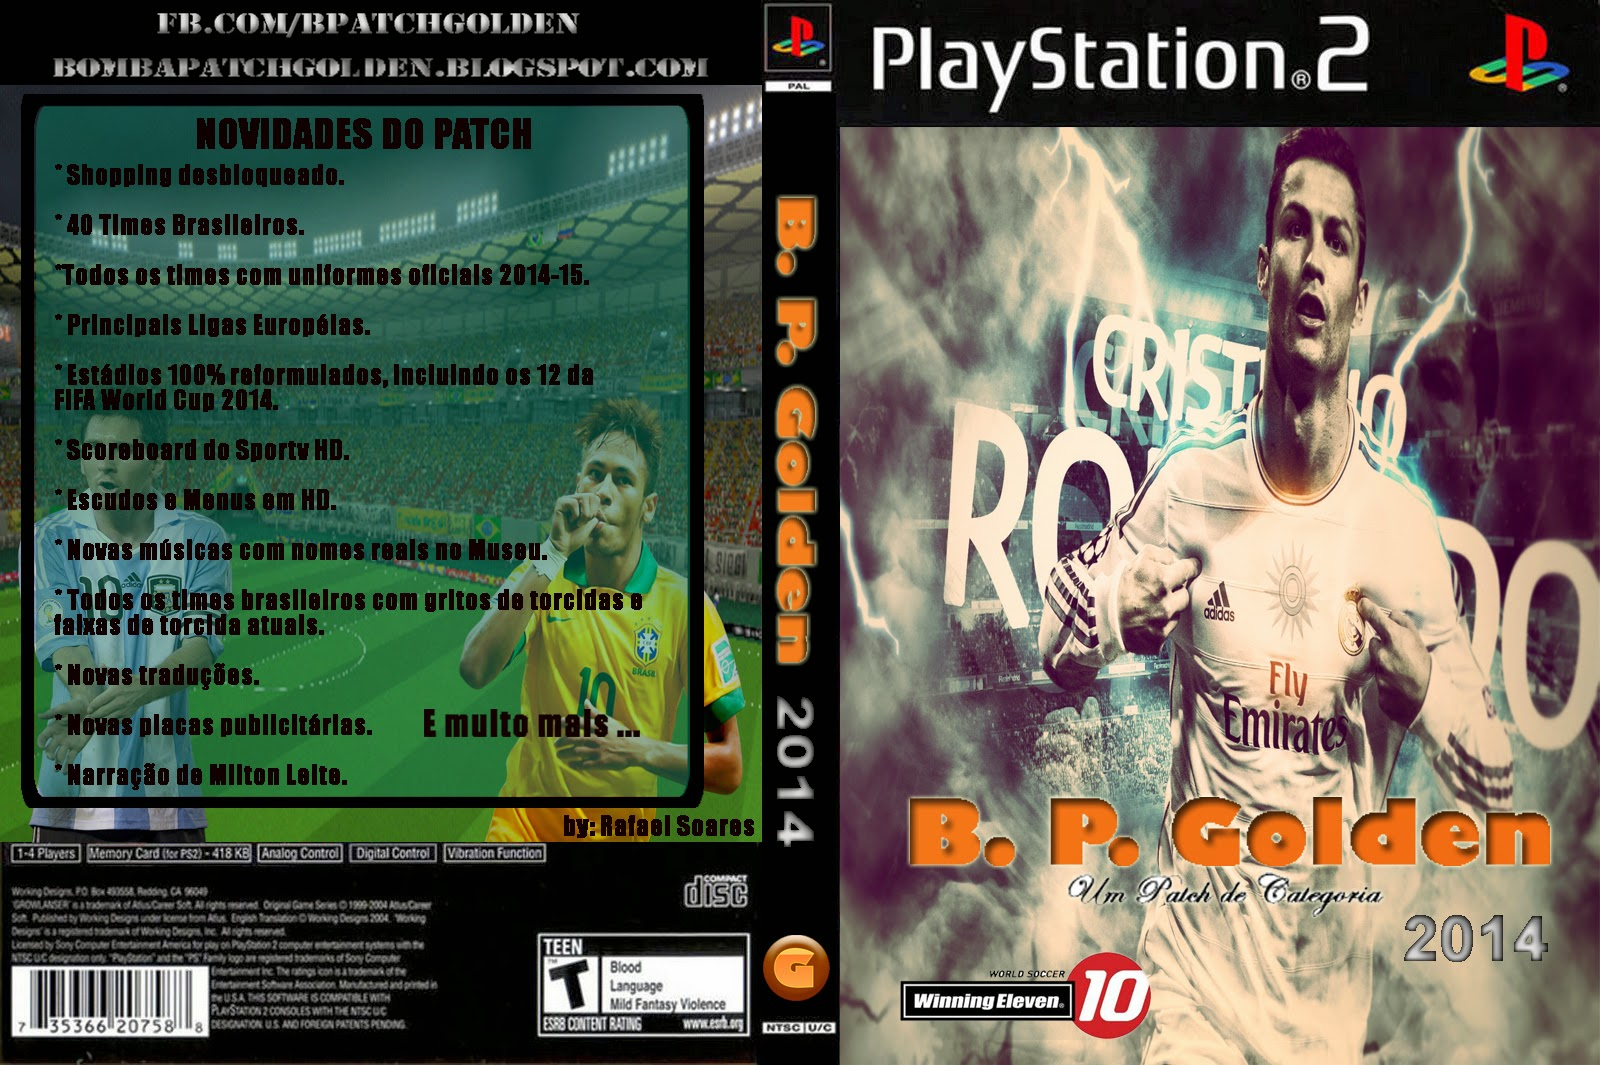 Torrent Super Compactado Bomba Patch Golden 2014 PS2